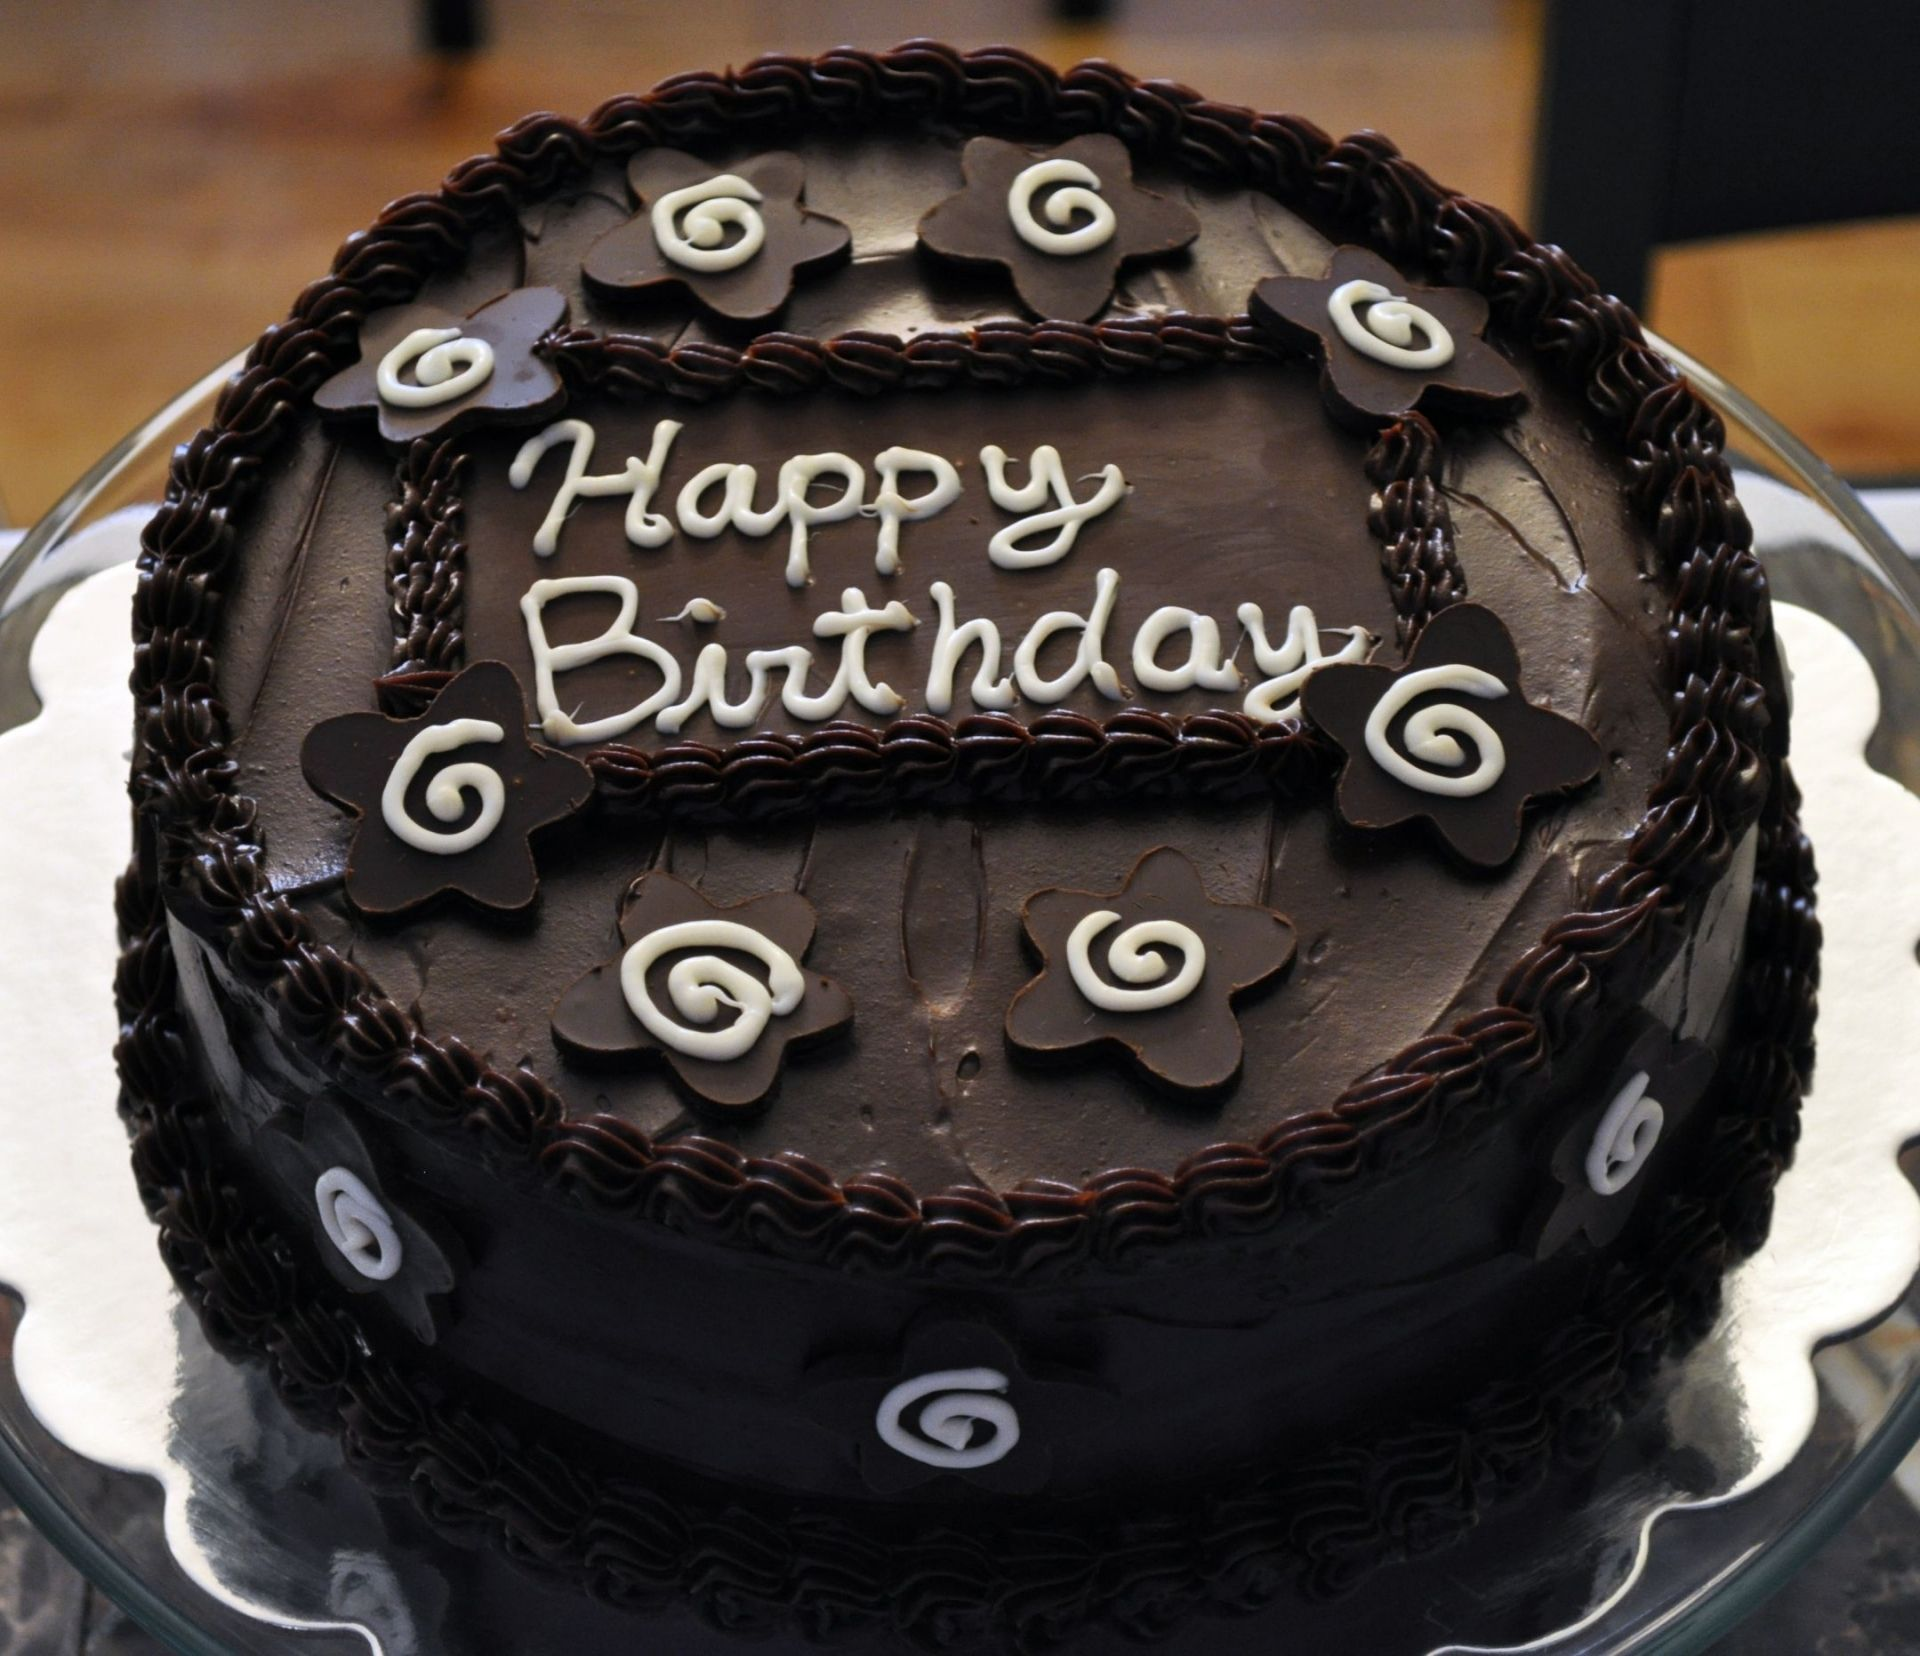 Happy Birthday Chocolate Cake Images HD Wallpapers 1080p